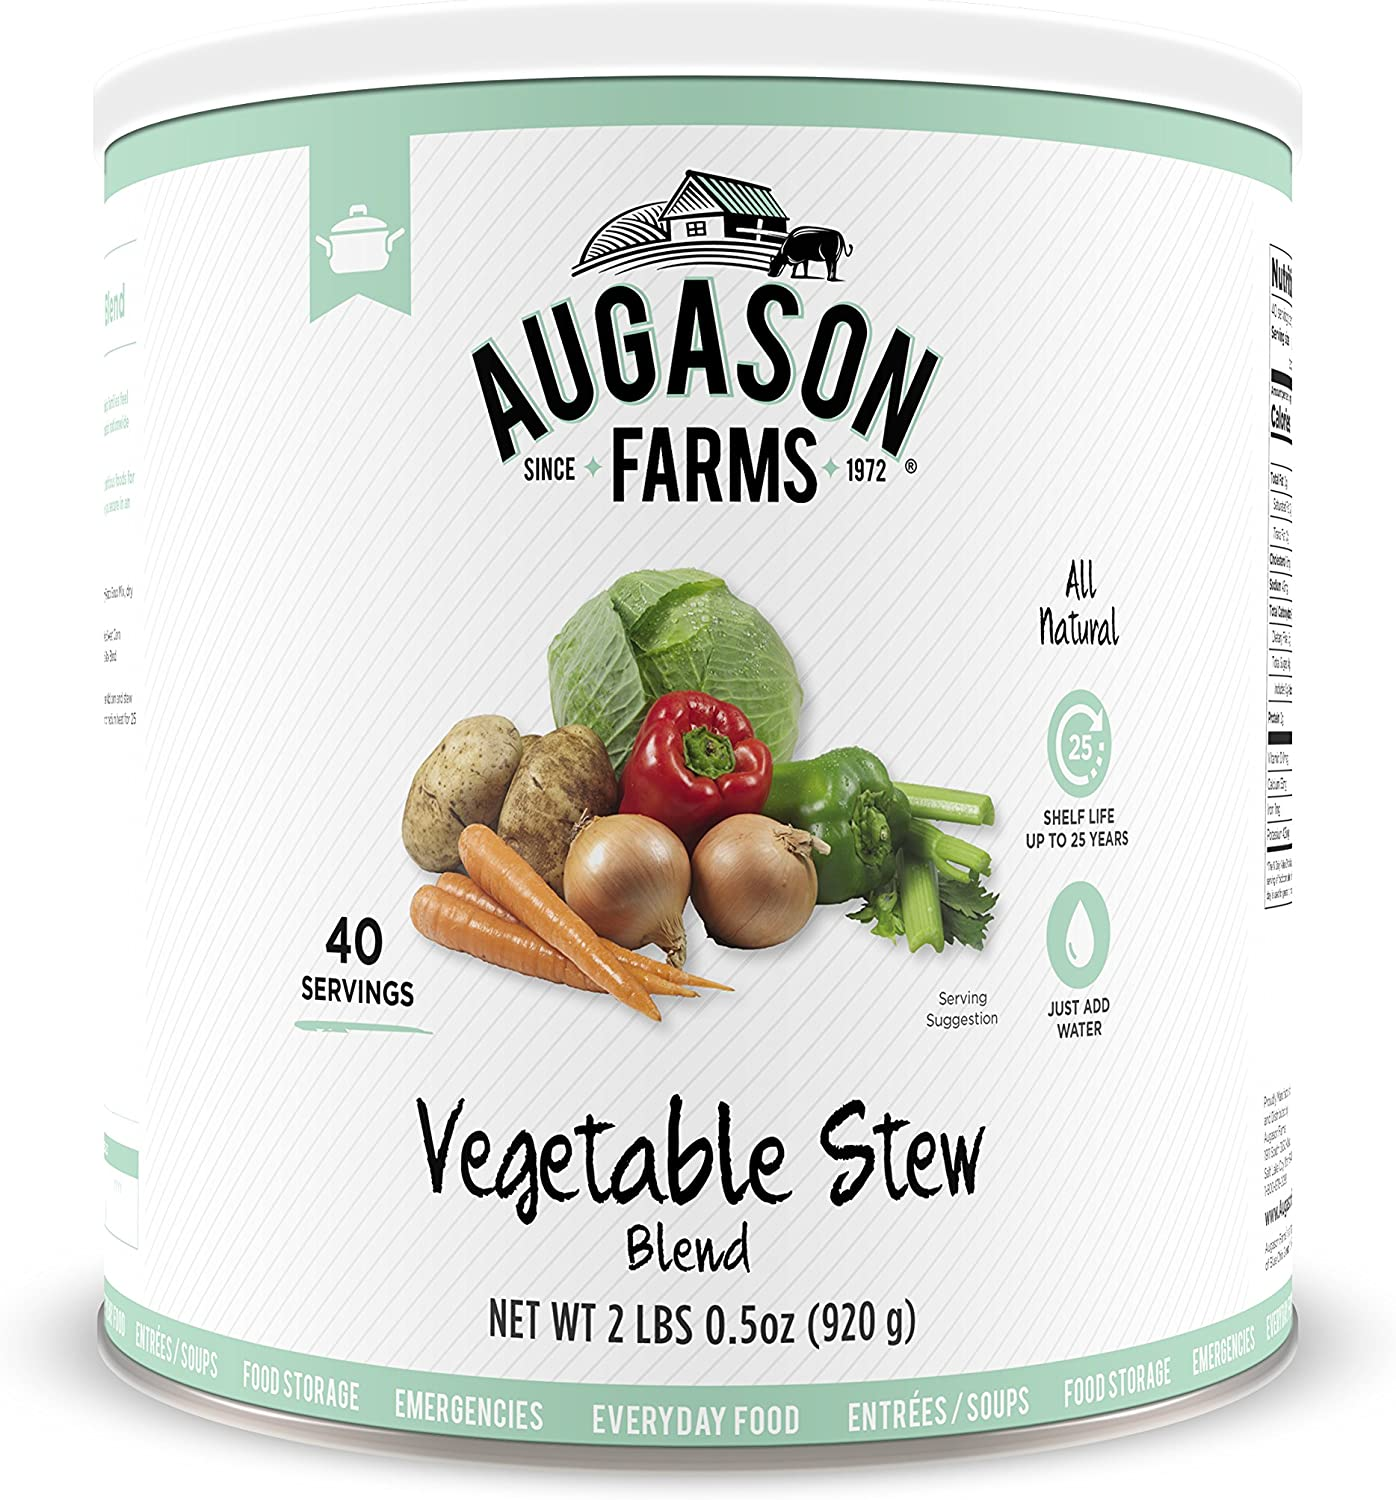 Augason Farms Vegetable Stew Blend 2 lbs 0.5 oz No. 10 Can